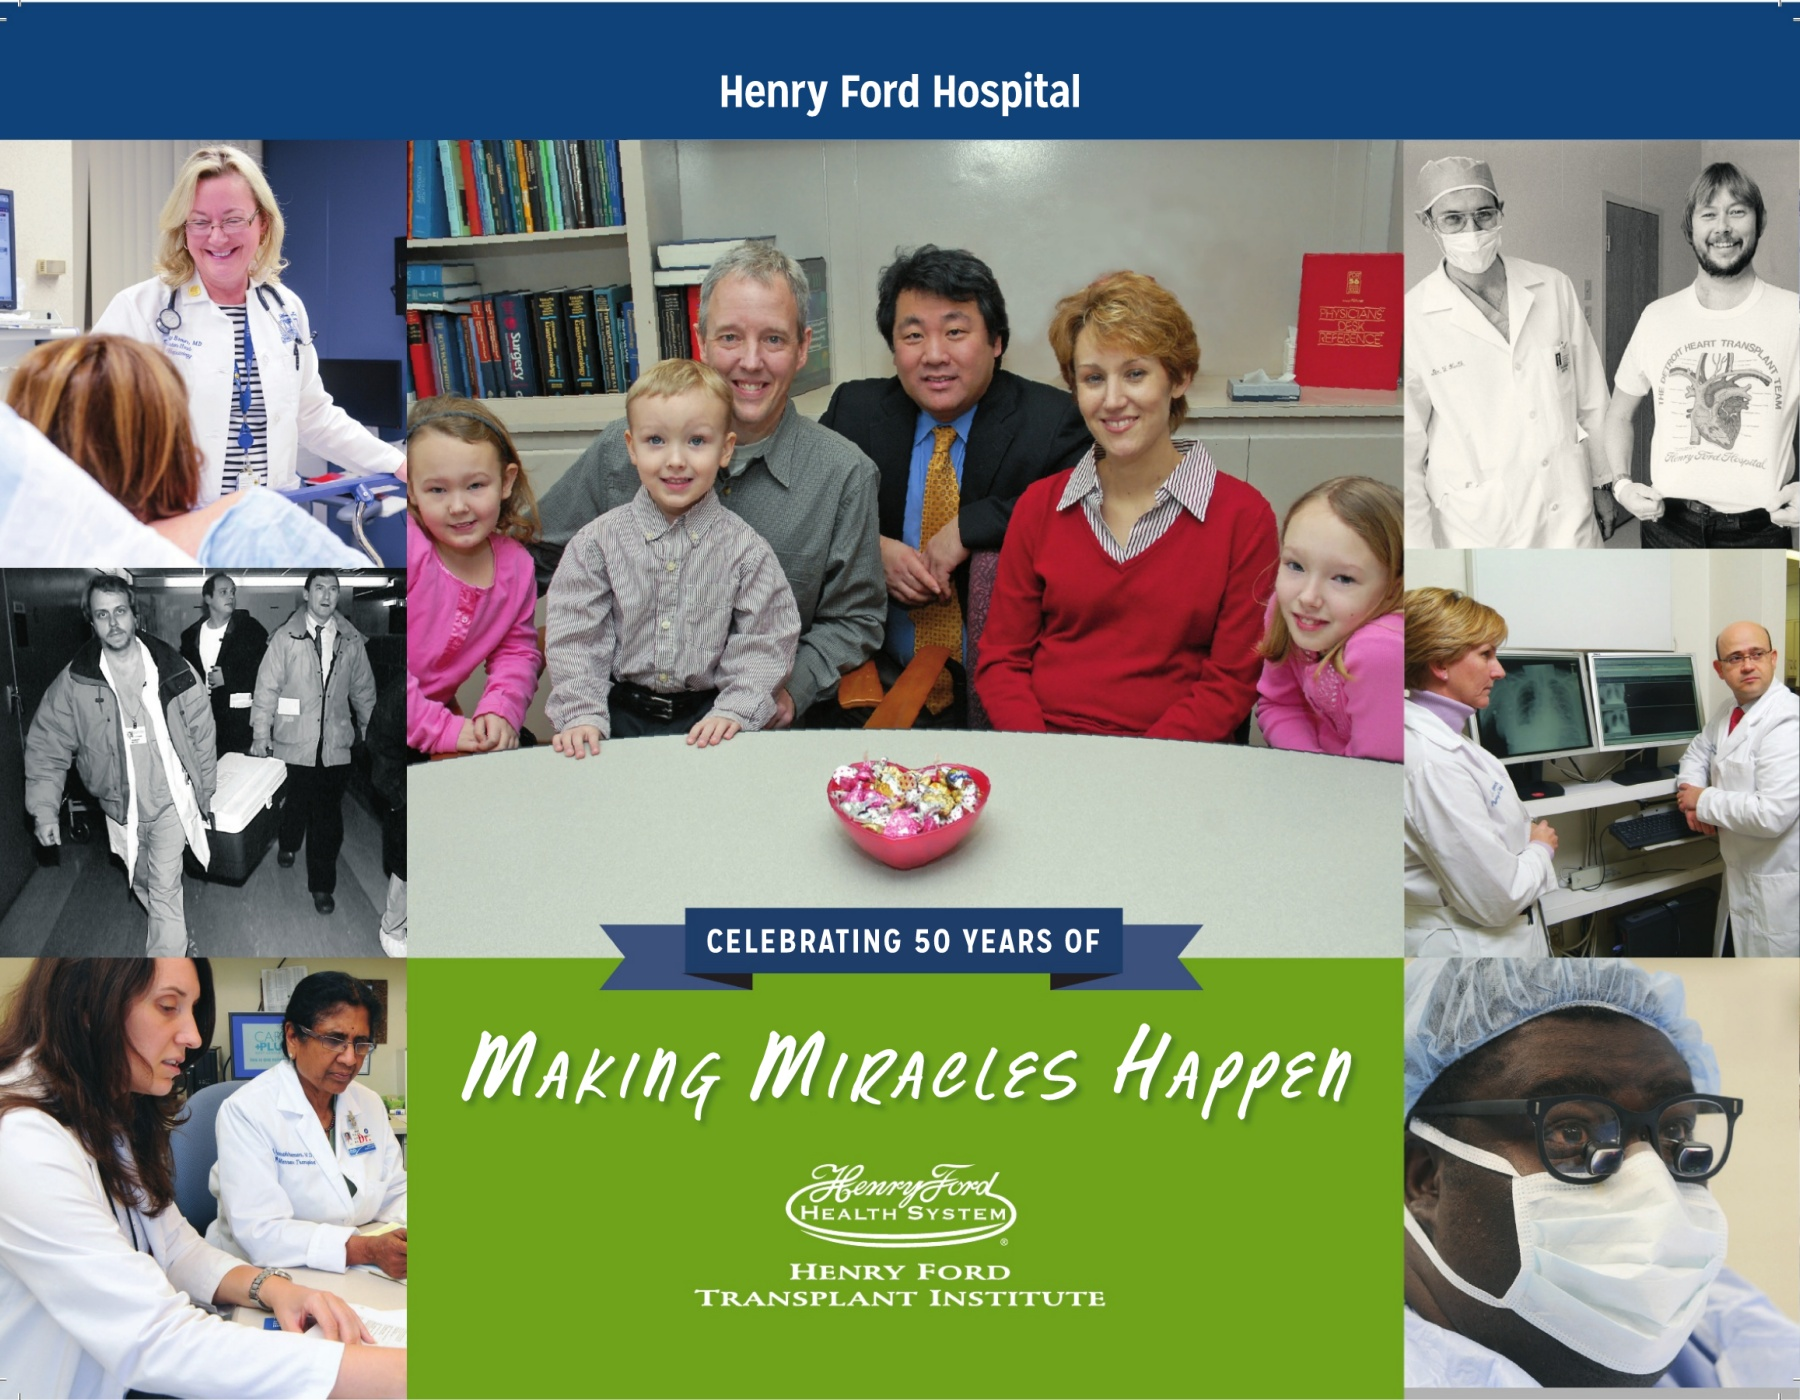 Henry Ford Health System Transplant Institute Pages 1 - 50